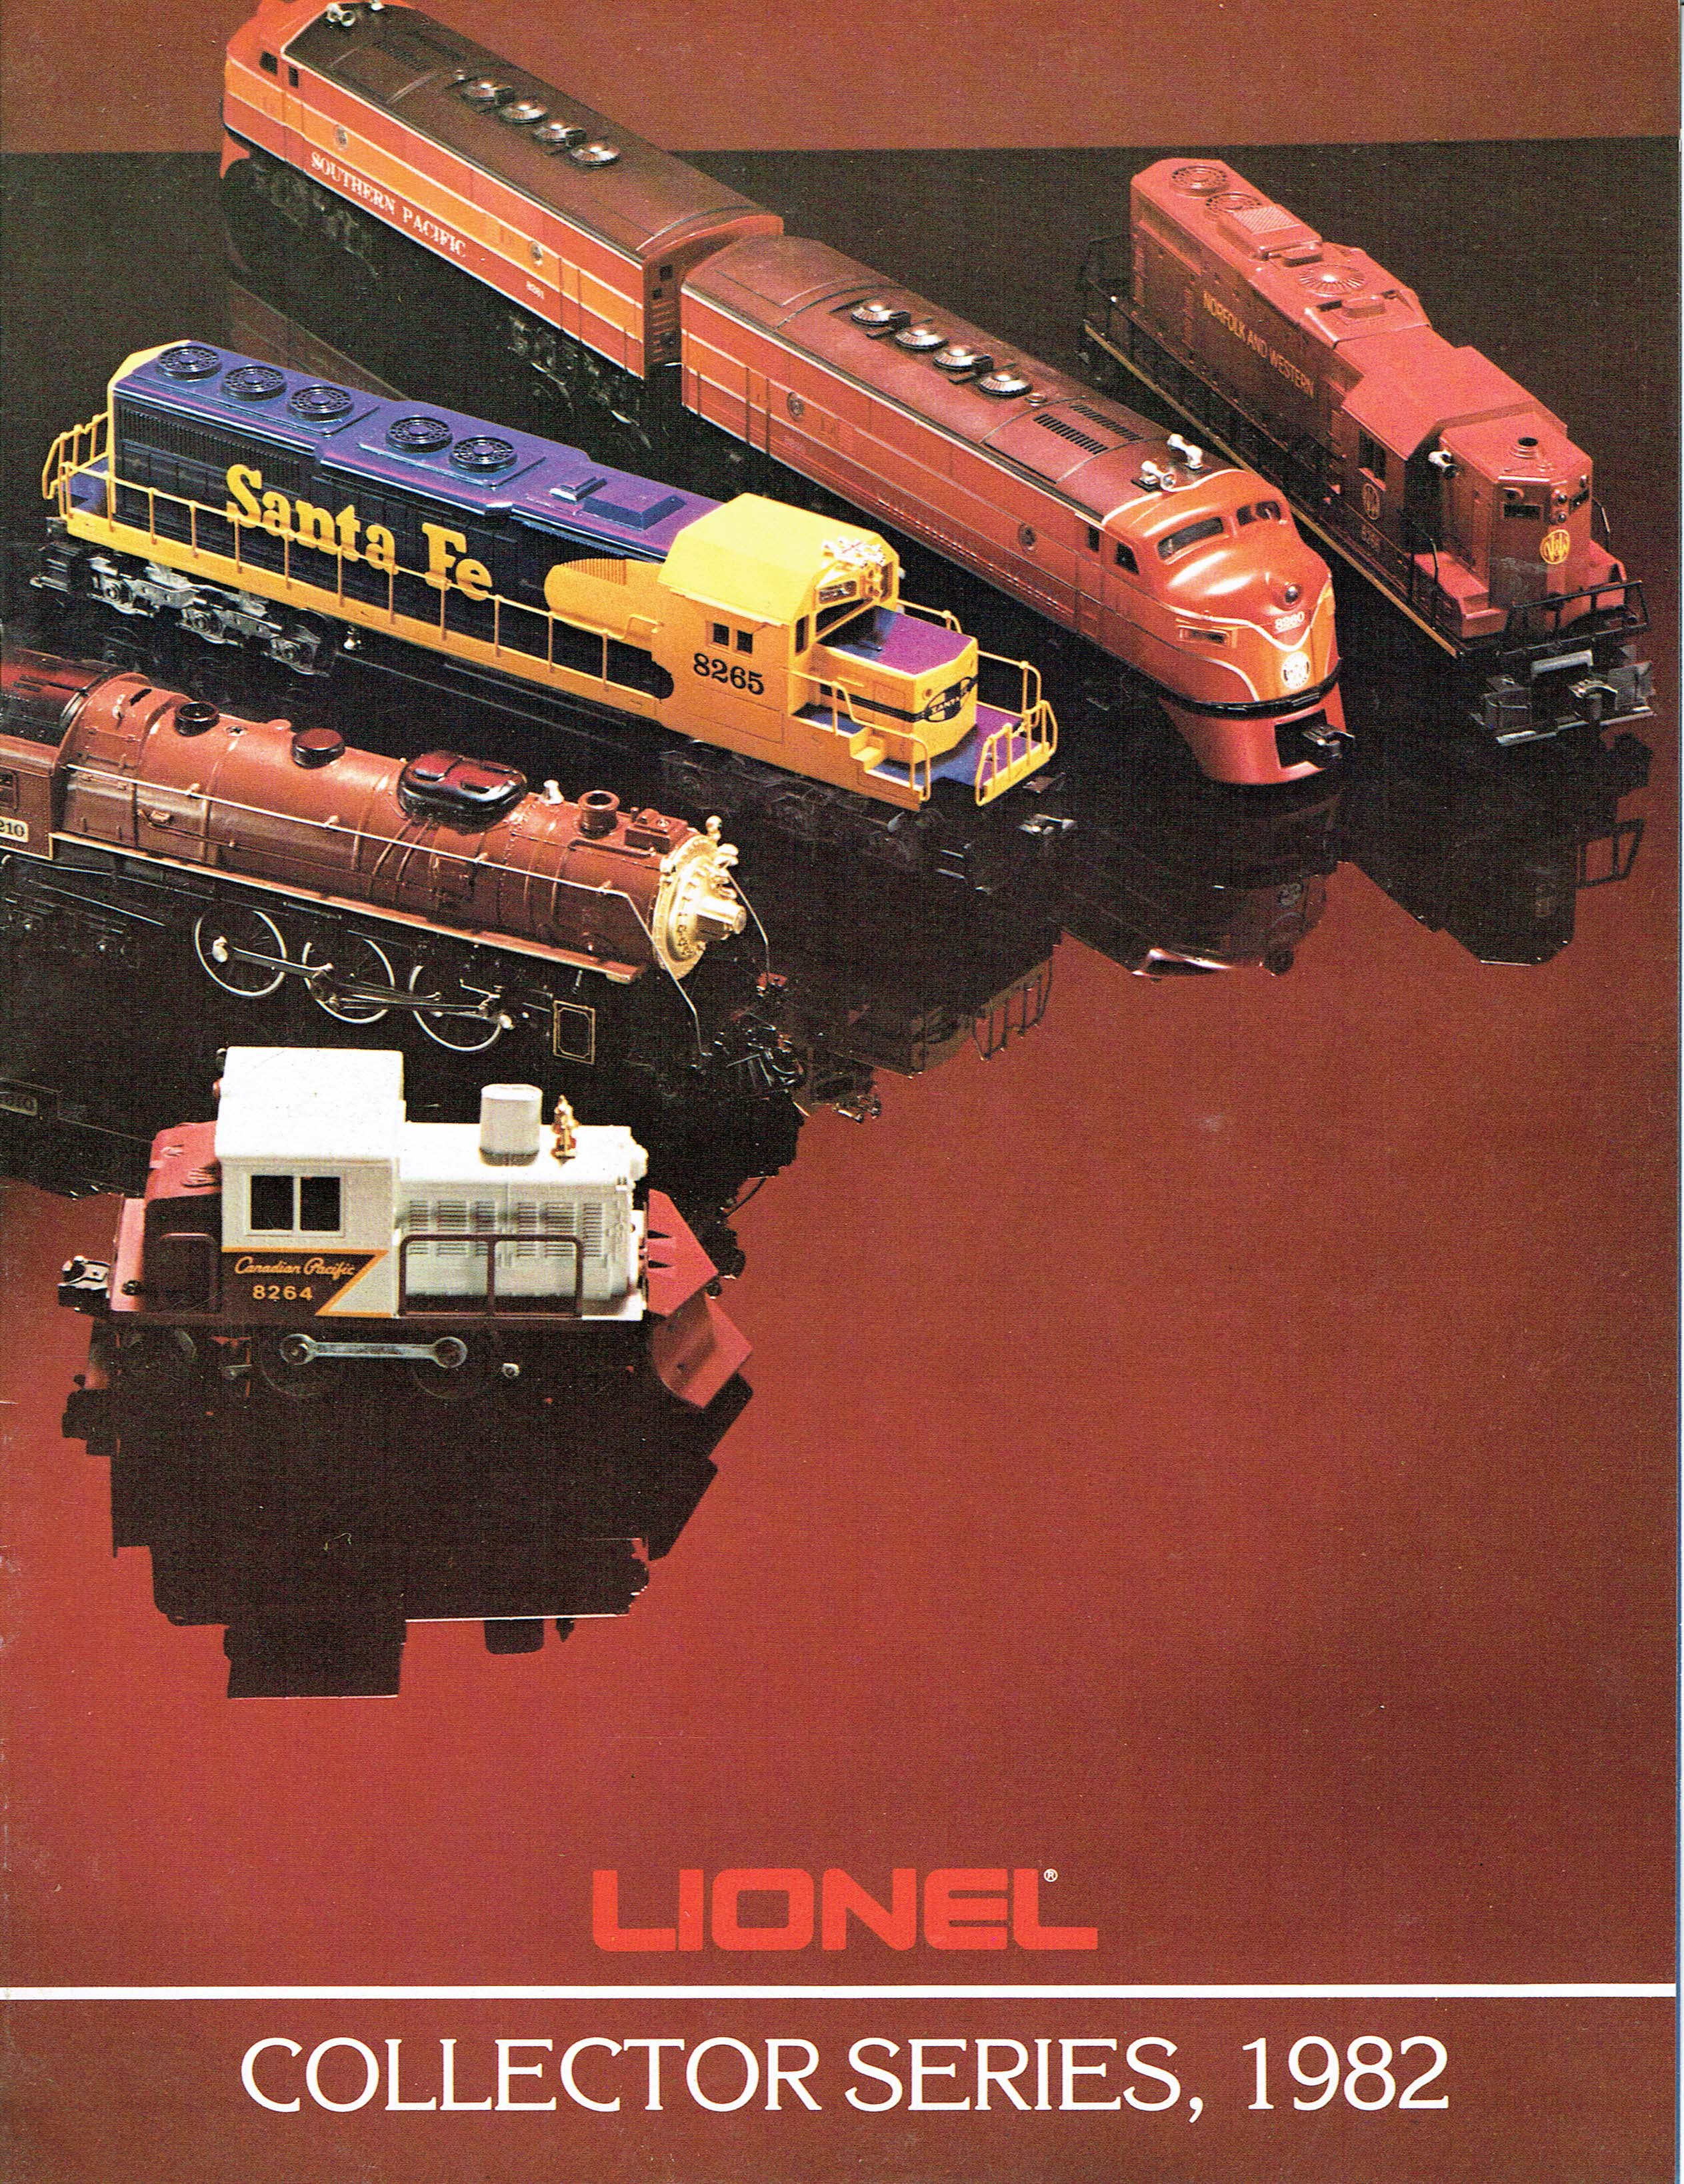 Lionel 1982 Collector Series Catalog image